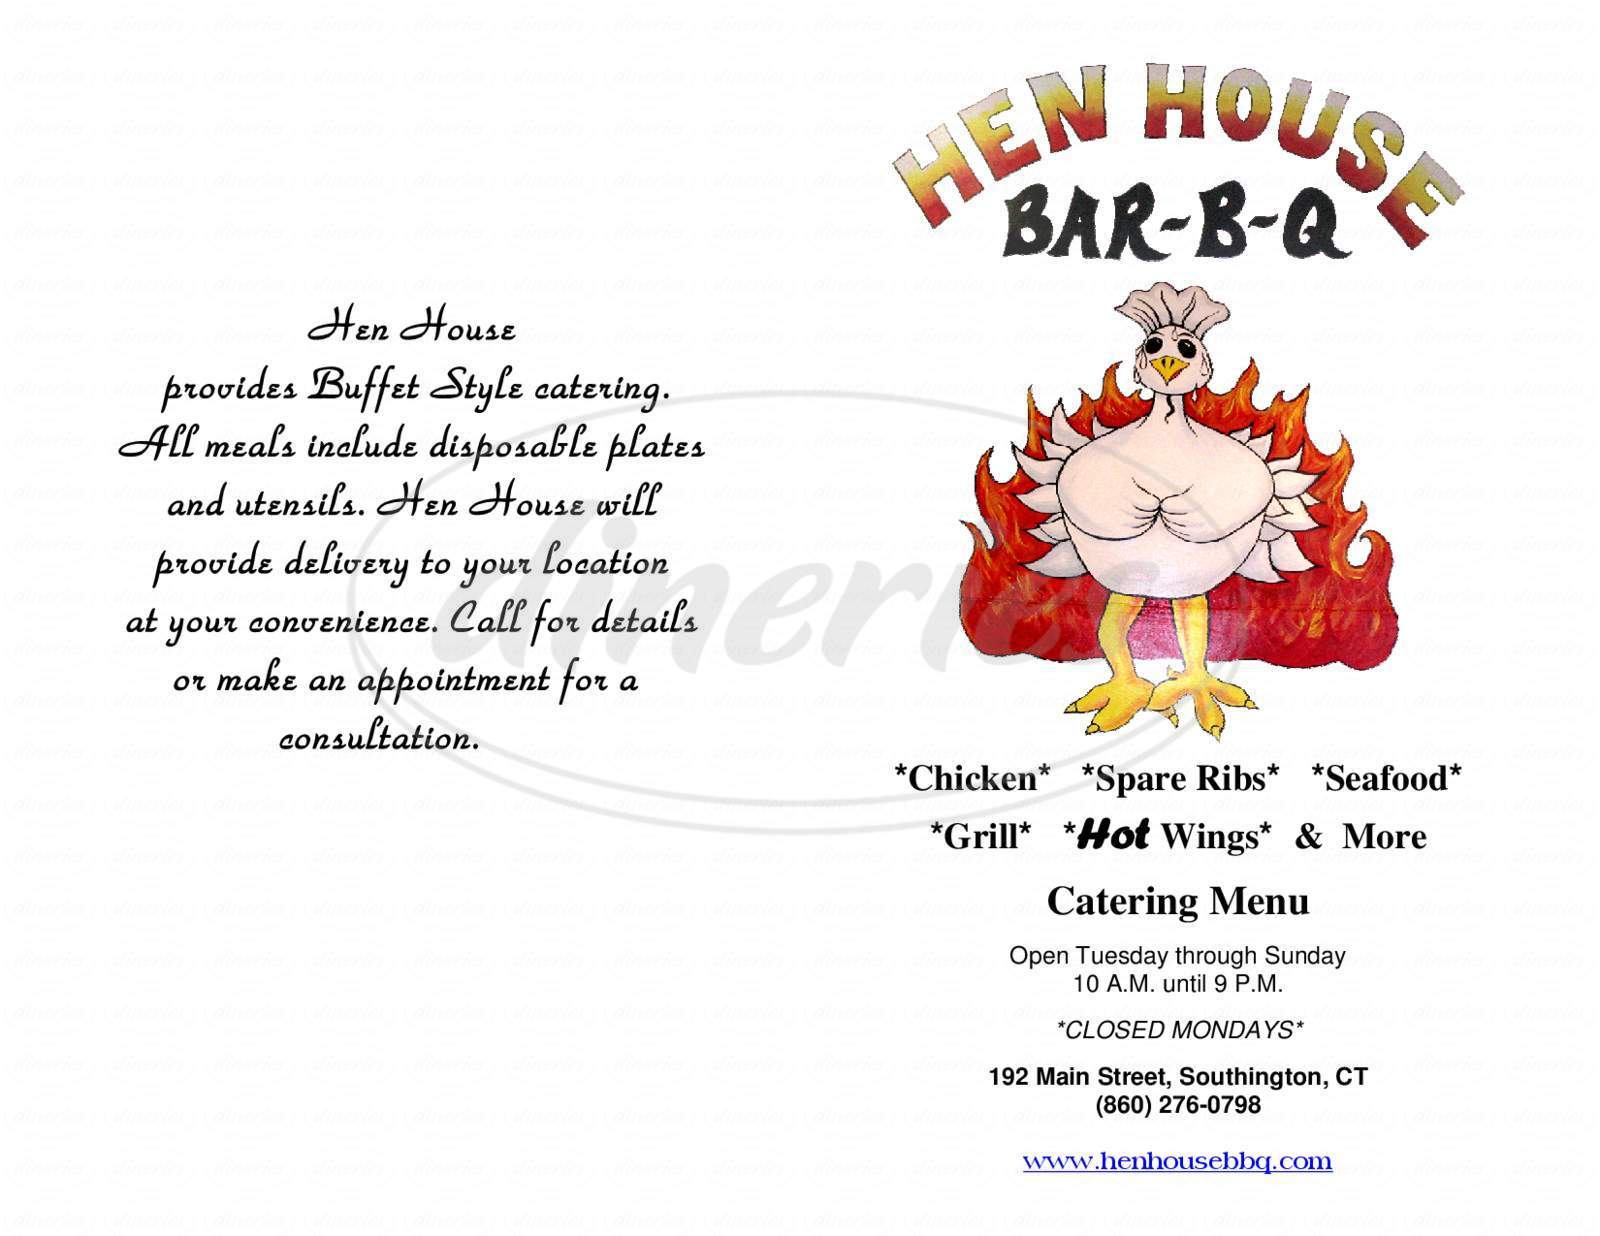 menu for Hen House Bar-B-Q